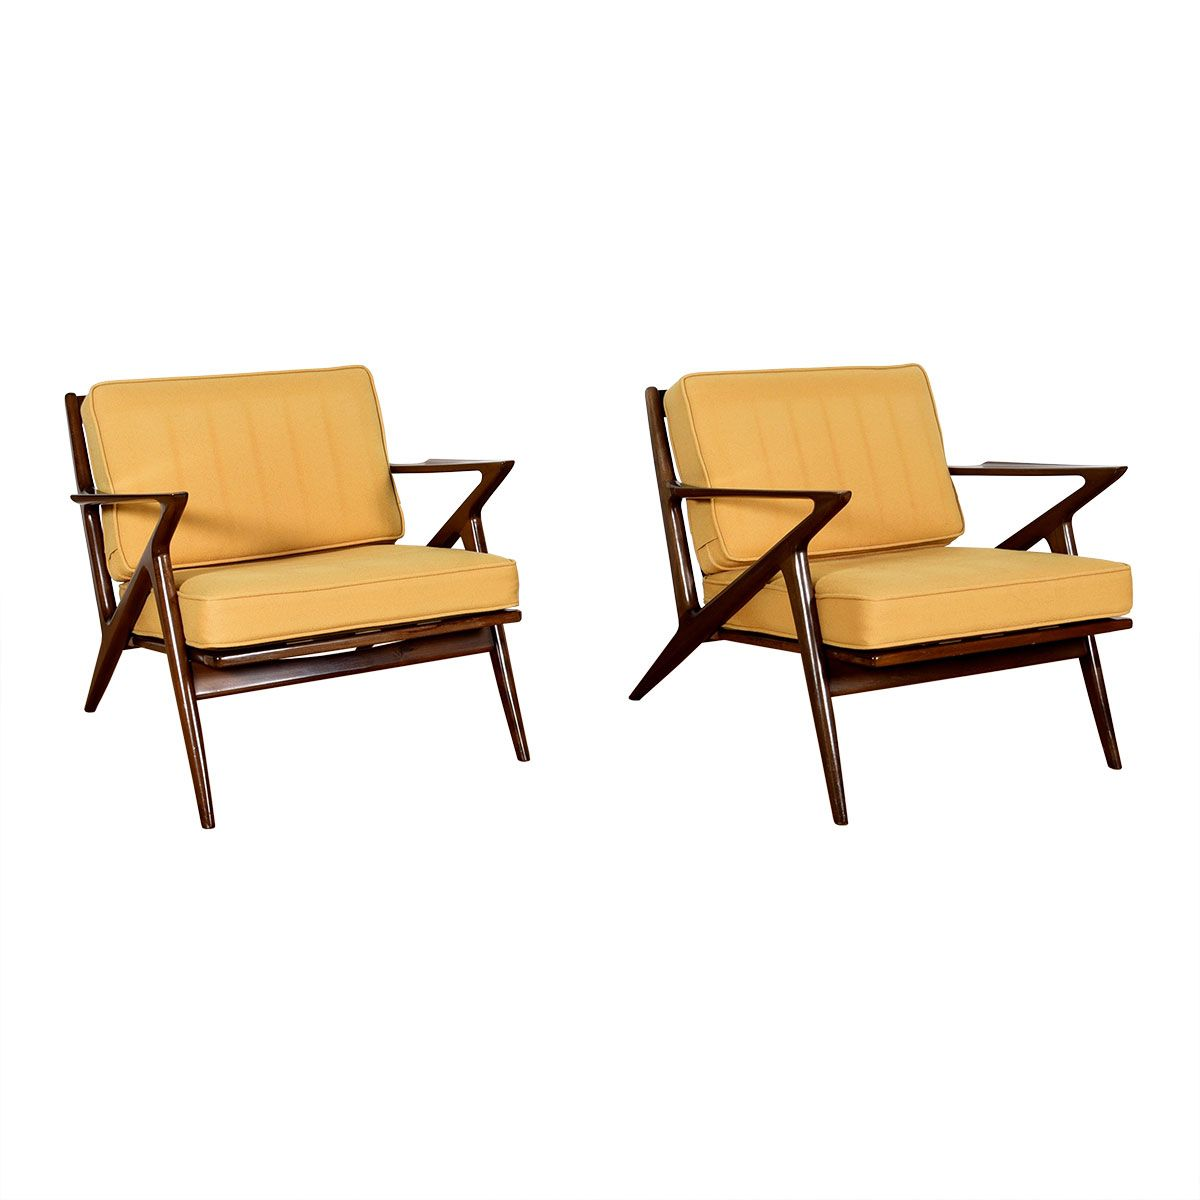 Double Z — Fabulous Pair Danish Easy Chairs in Golden Yellow by Selig